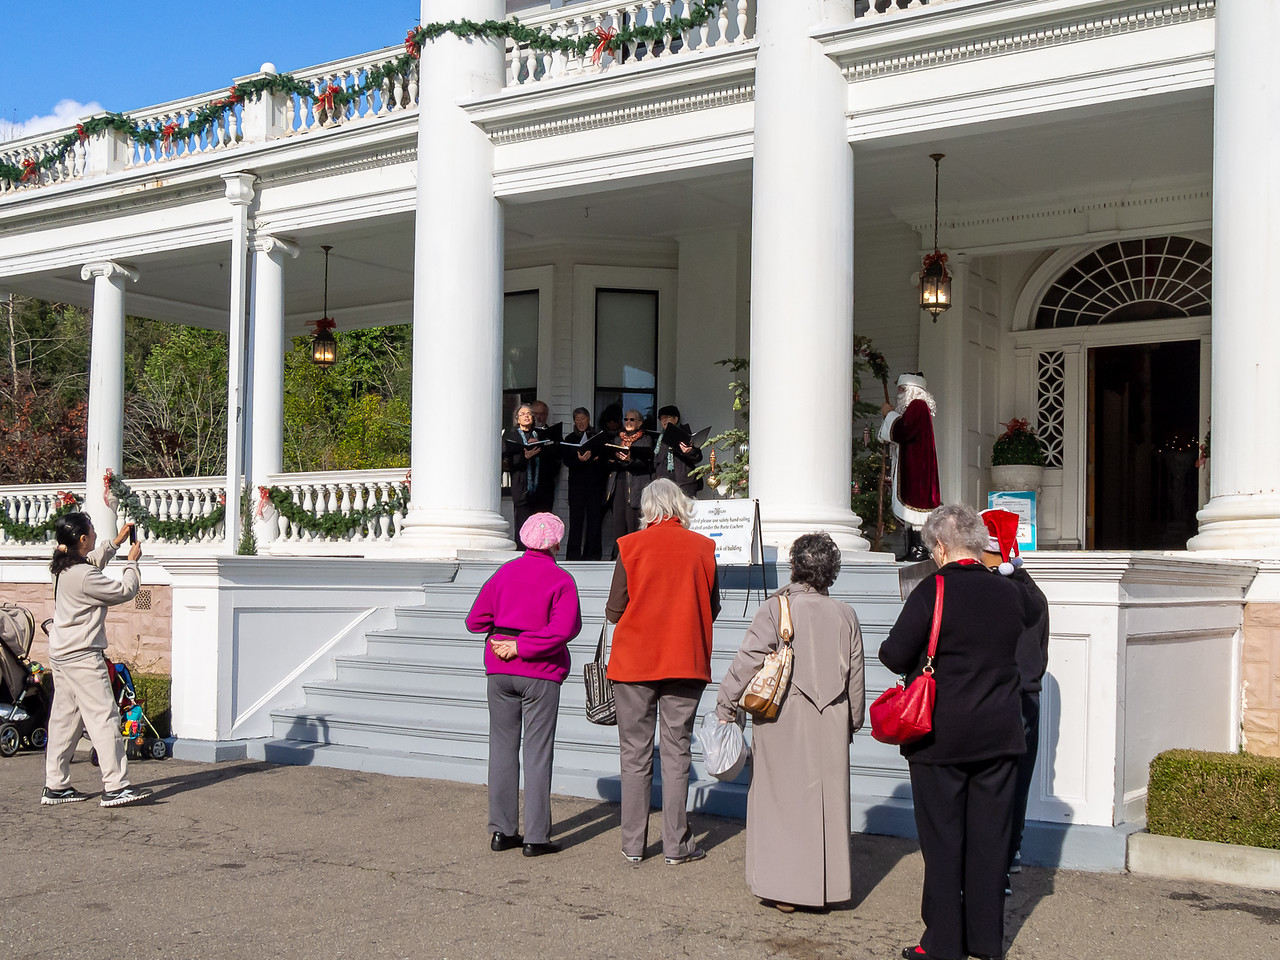 Dunsmuir House, December 13.  TOSCA performed on the veranda: a fine place  for sound and for collecting passers-by.